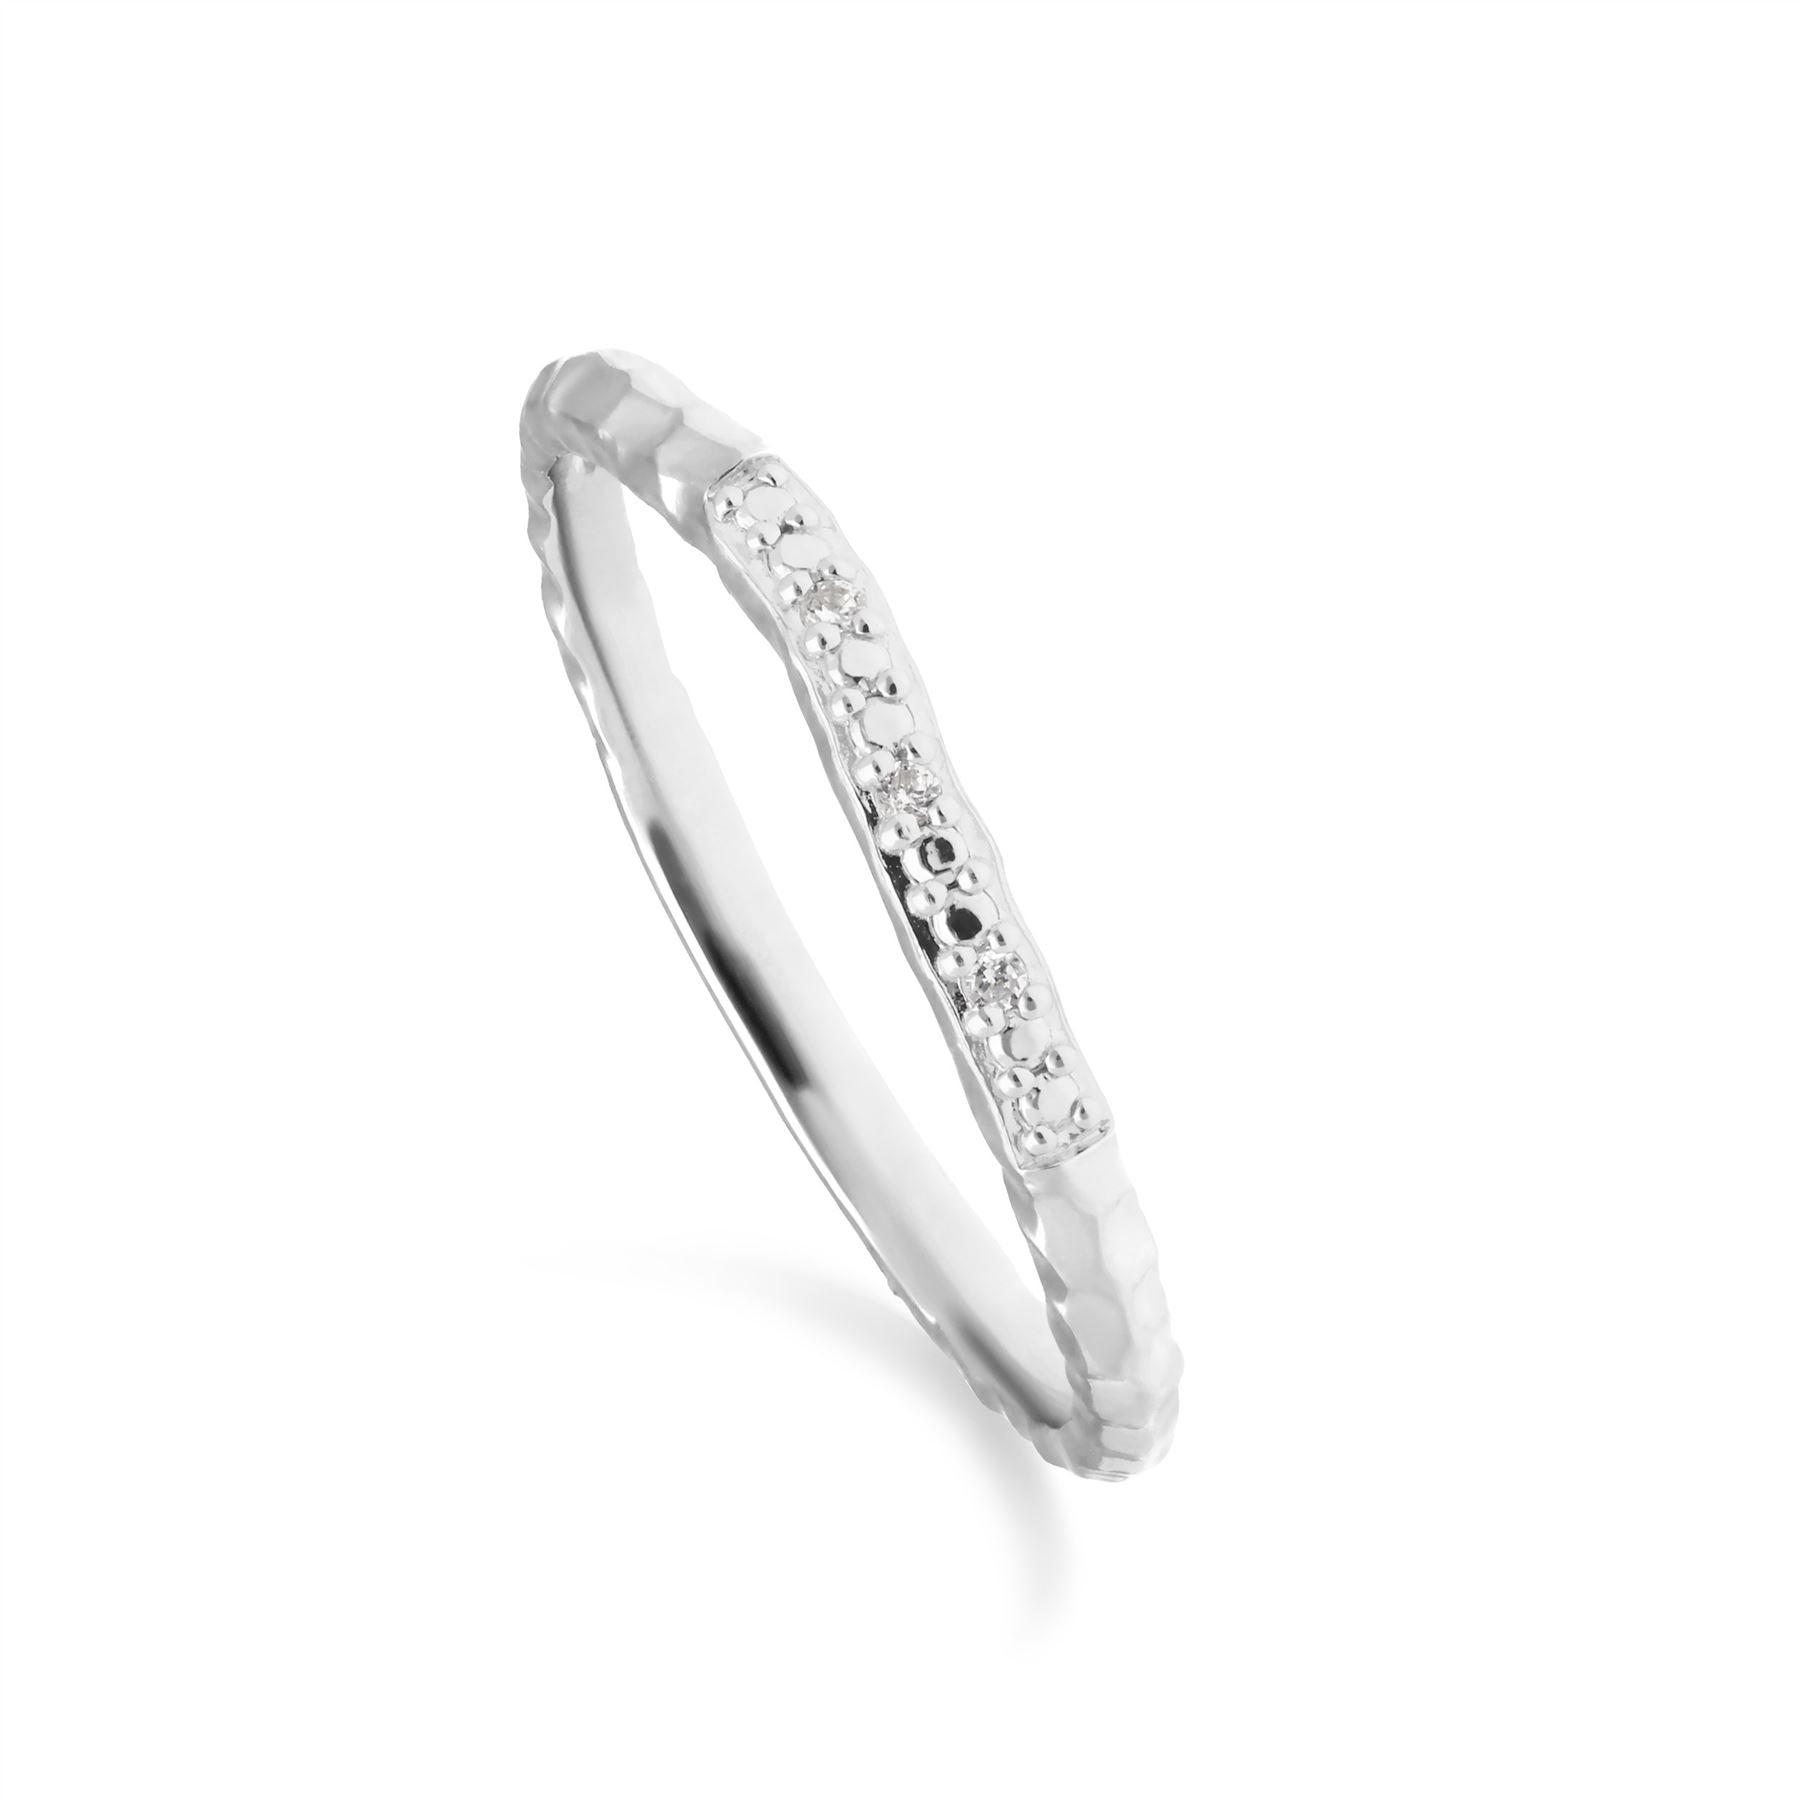 Image of Diamond Pave Hammered Band Ring in 9ct White Gold